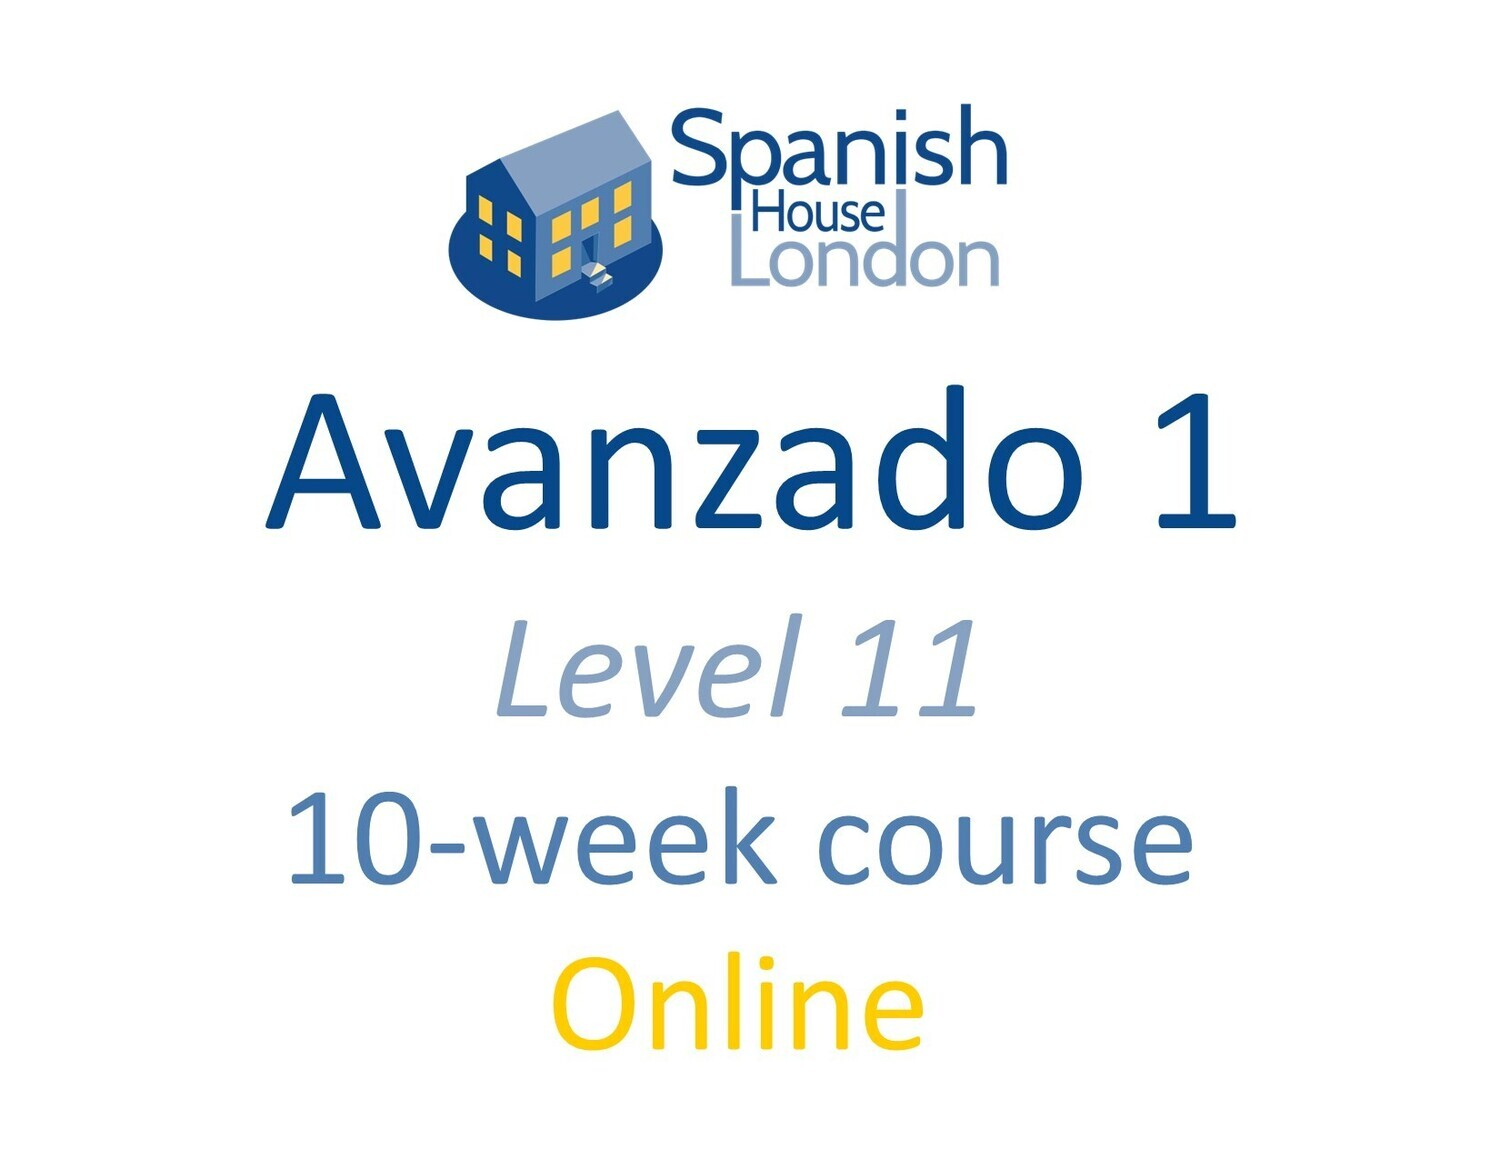 Avanzado 1 Course starting on 13th January at 7.30pm